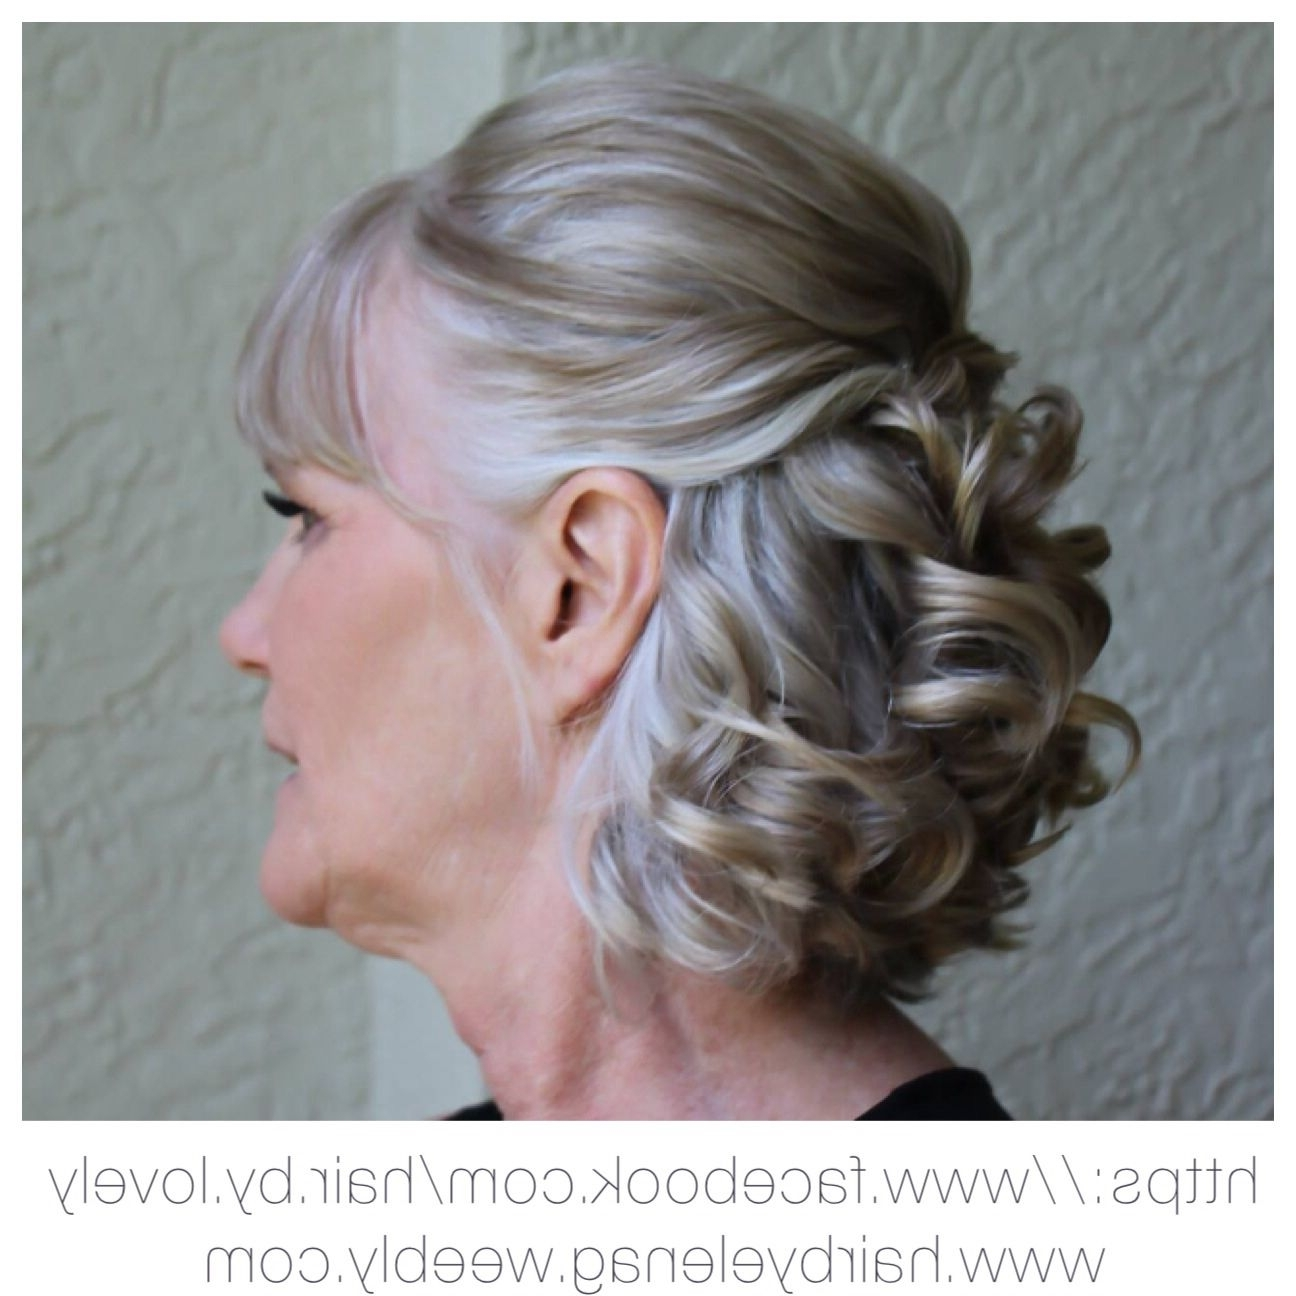 Bridal Hair, Wedding Hair, Mother Of The Groom | Wedding Hair Intended For Mother Of The Bride Updo Hairstyles For Weddings (View 4 of 15)